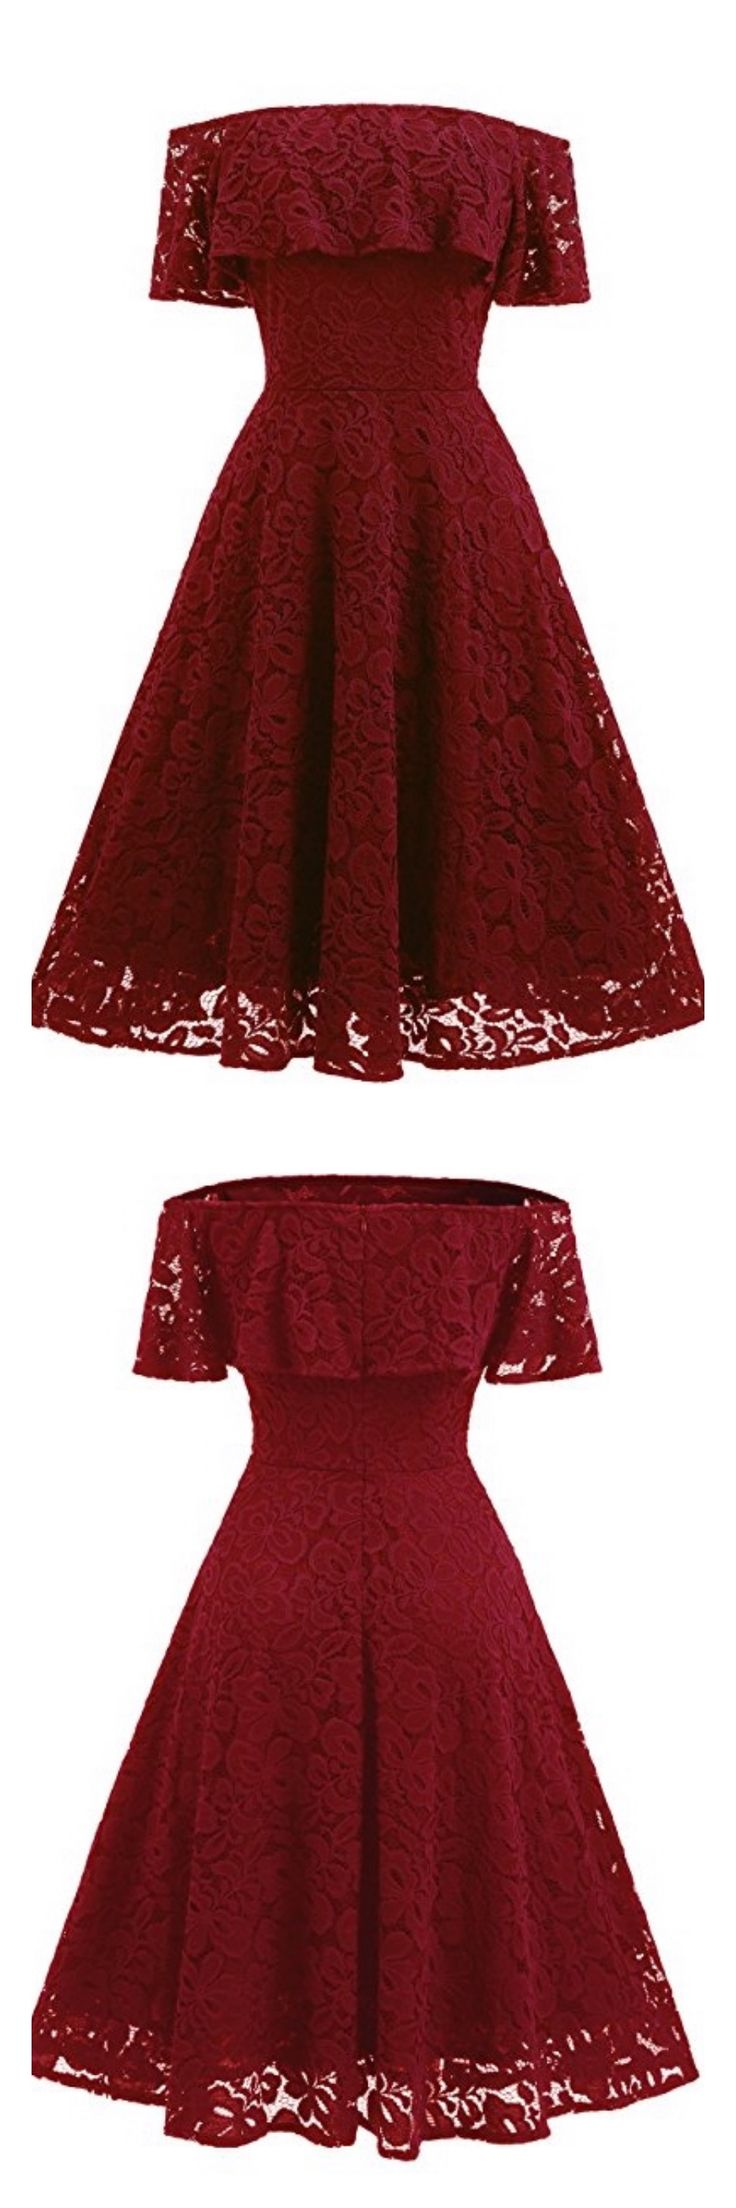 burgundy  homecoming dresses, 2k17 homecoming dresses, lace homecoming dresses, homecoming dresses short, strapless  homecoming dresses, vintage  homecoming dresses, cocktail dresses, graduation dresses, party dresses,prom dresses #SIMIBridal #homecomingdresses